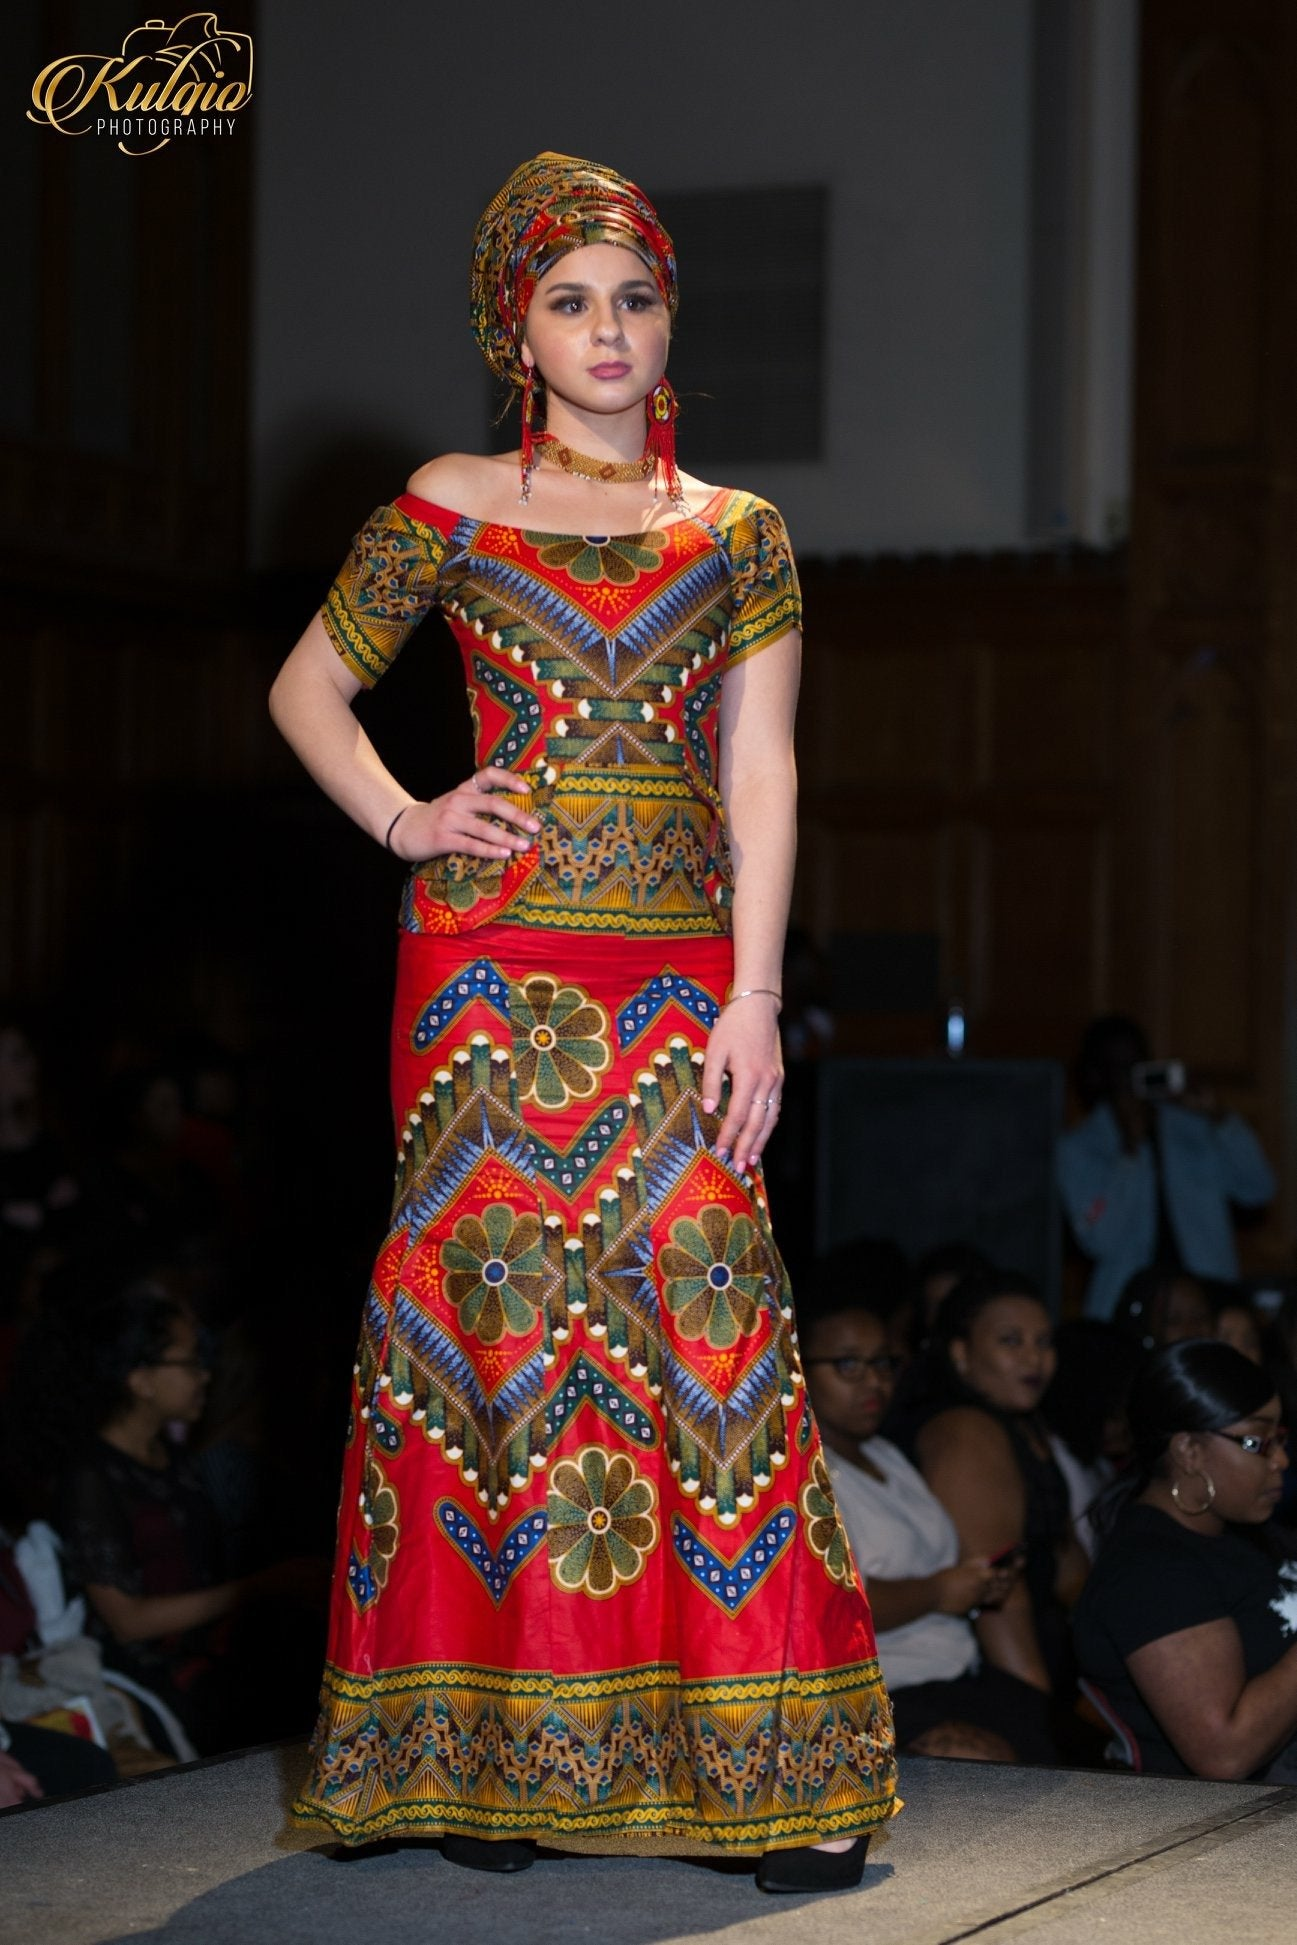 Custom Designs We Are Pleased To Start On Your New One-Of-A-Kind Custom Order Ankara Fashion